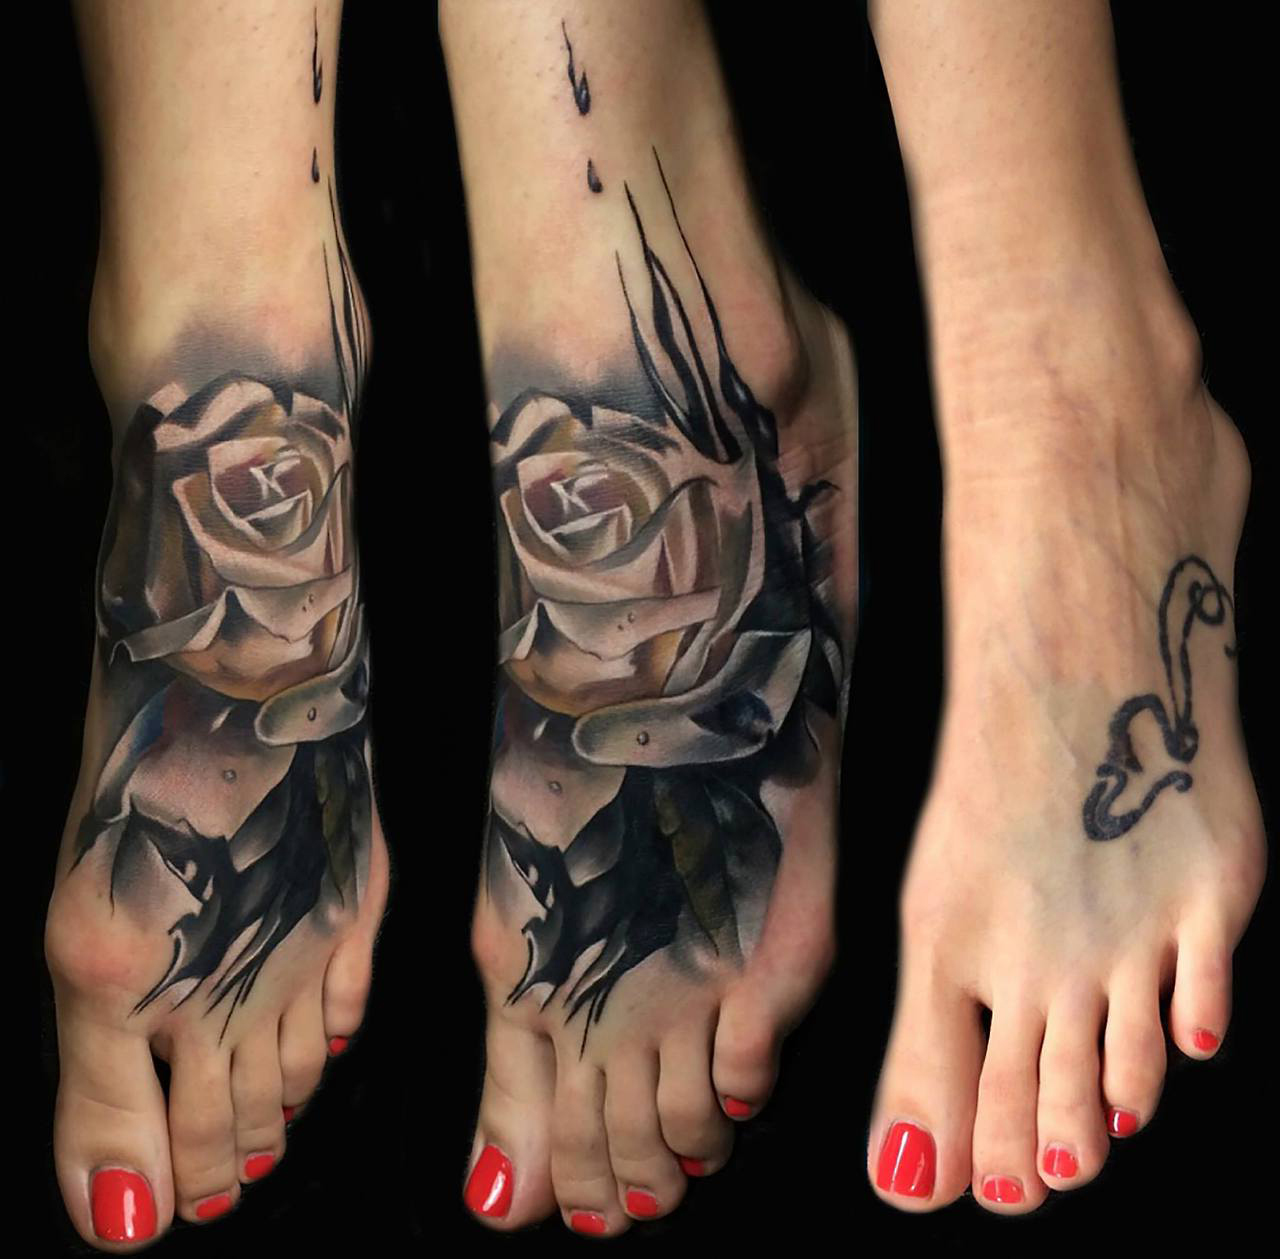 Foot Rose Cover Up tattoo design